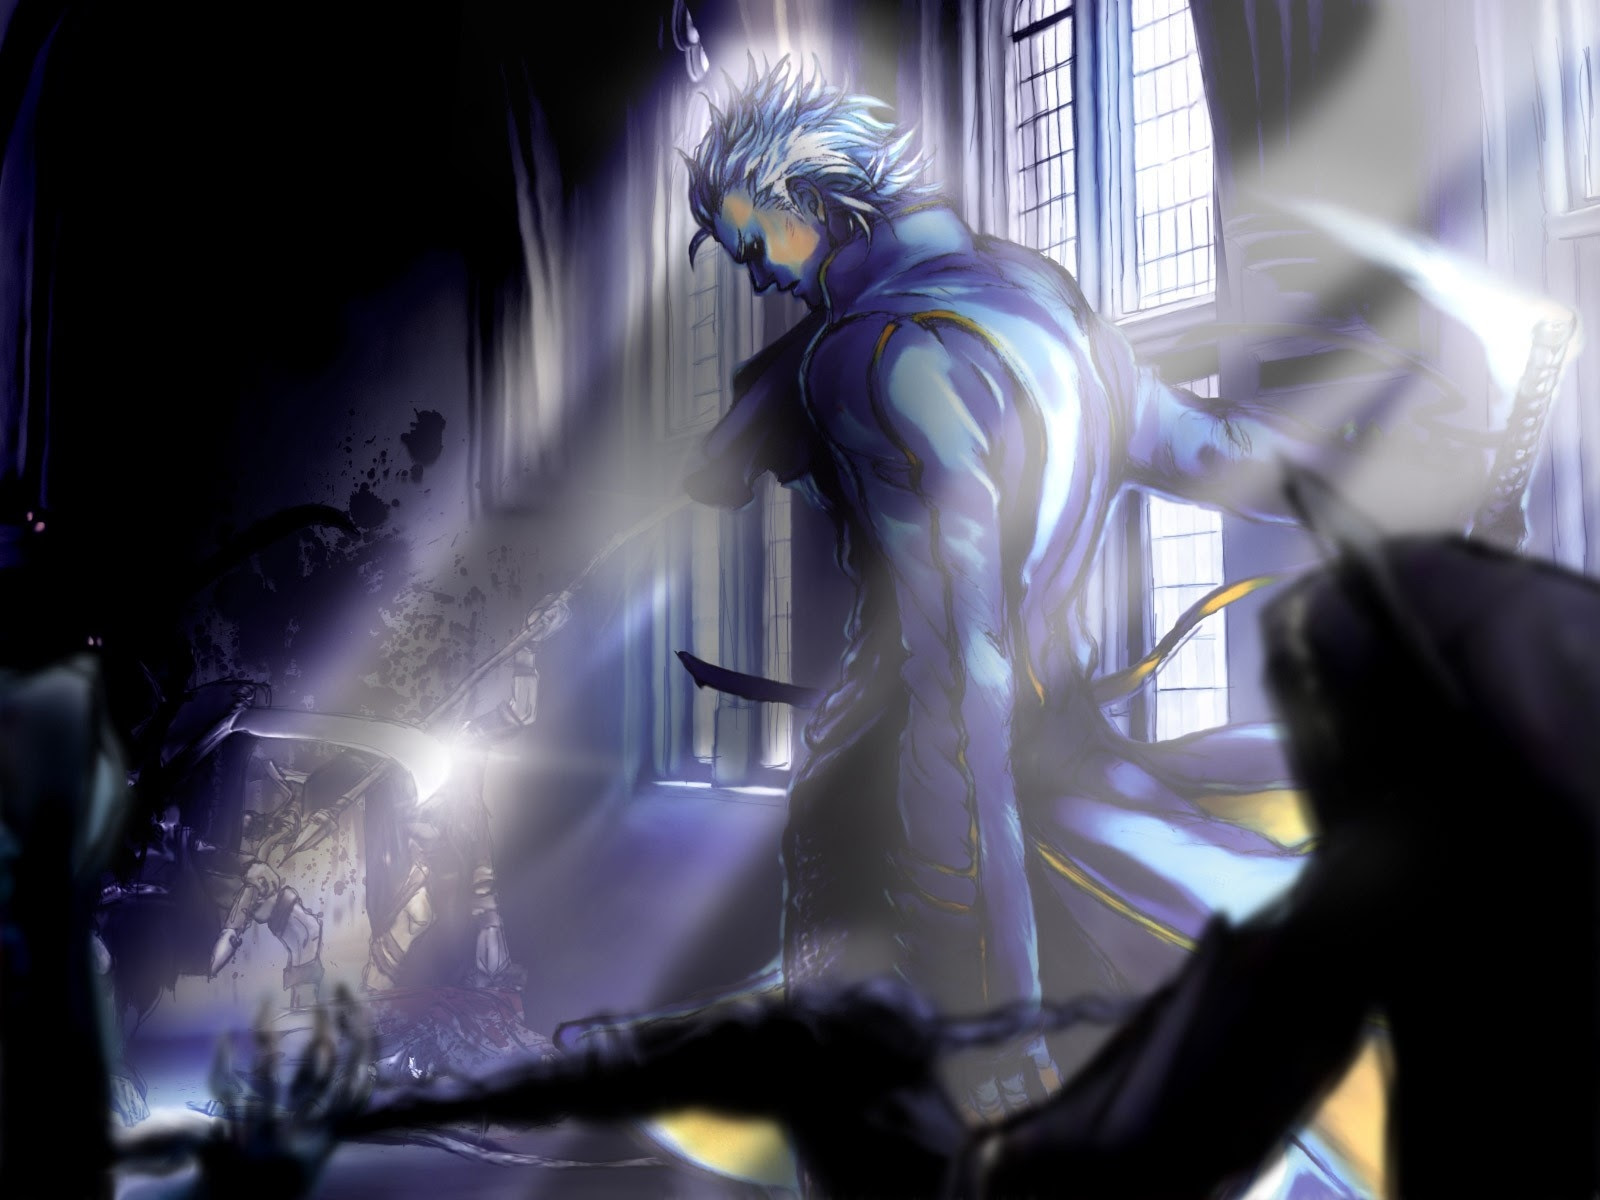 Devil May Cry Vergil 1600x1200 Wallpaper High Quality Wallpapers